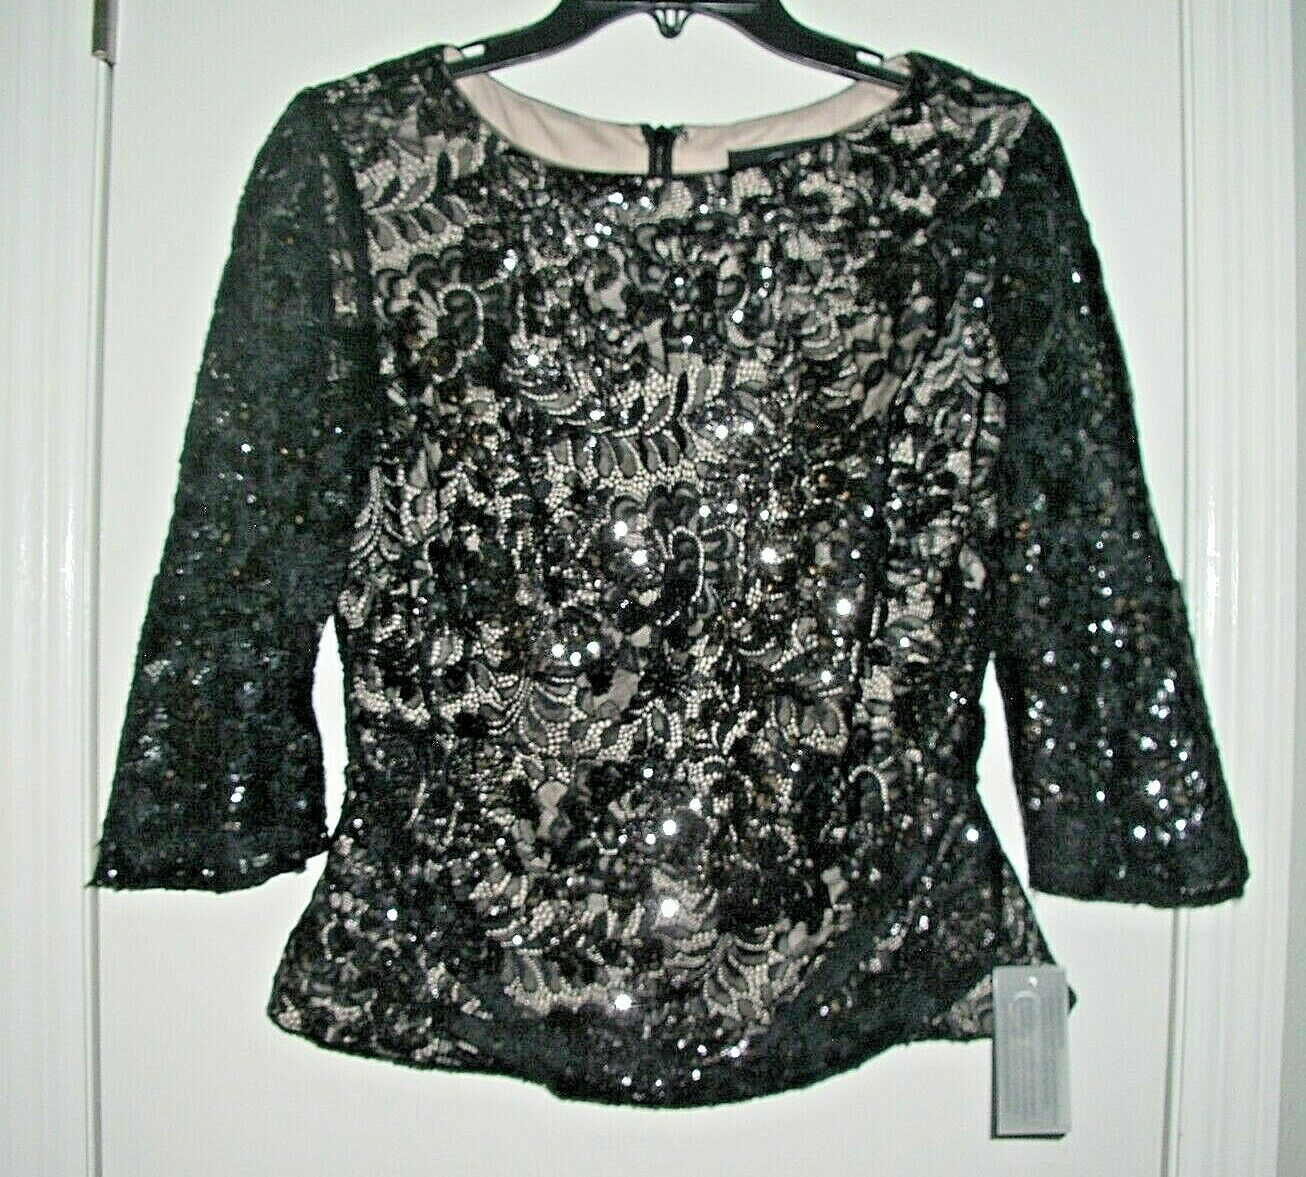 NWT Alex Evenings Lined Black Nude Sequin Small 83122297